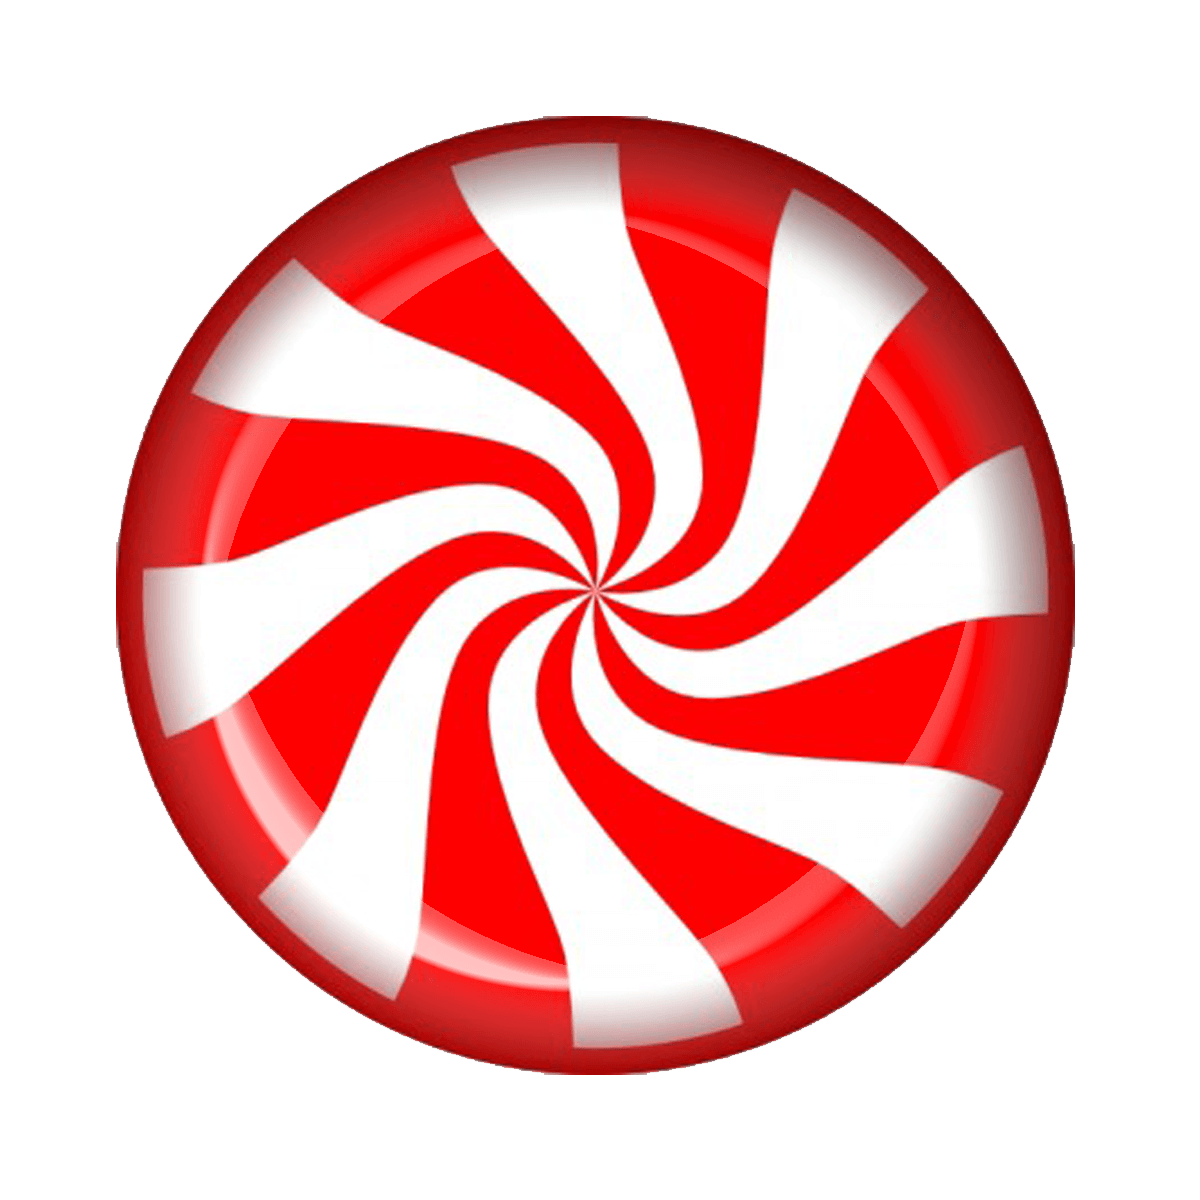 Circle clipart candy.  collection of peppermint